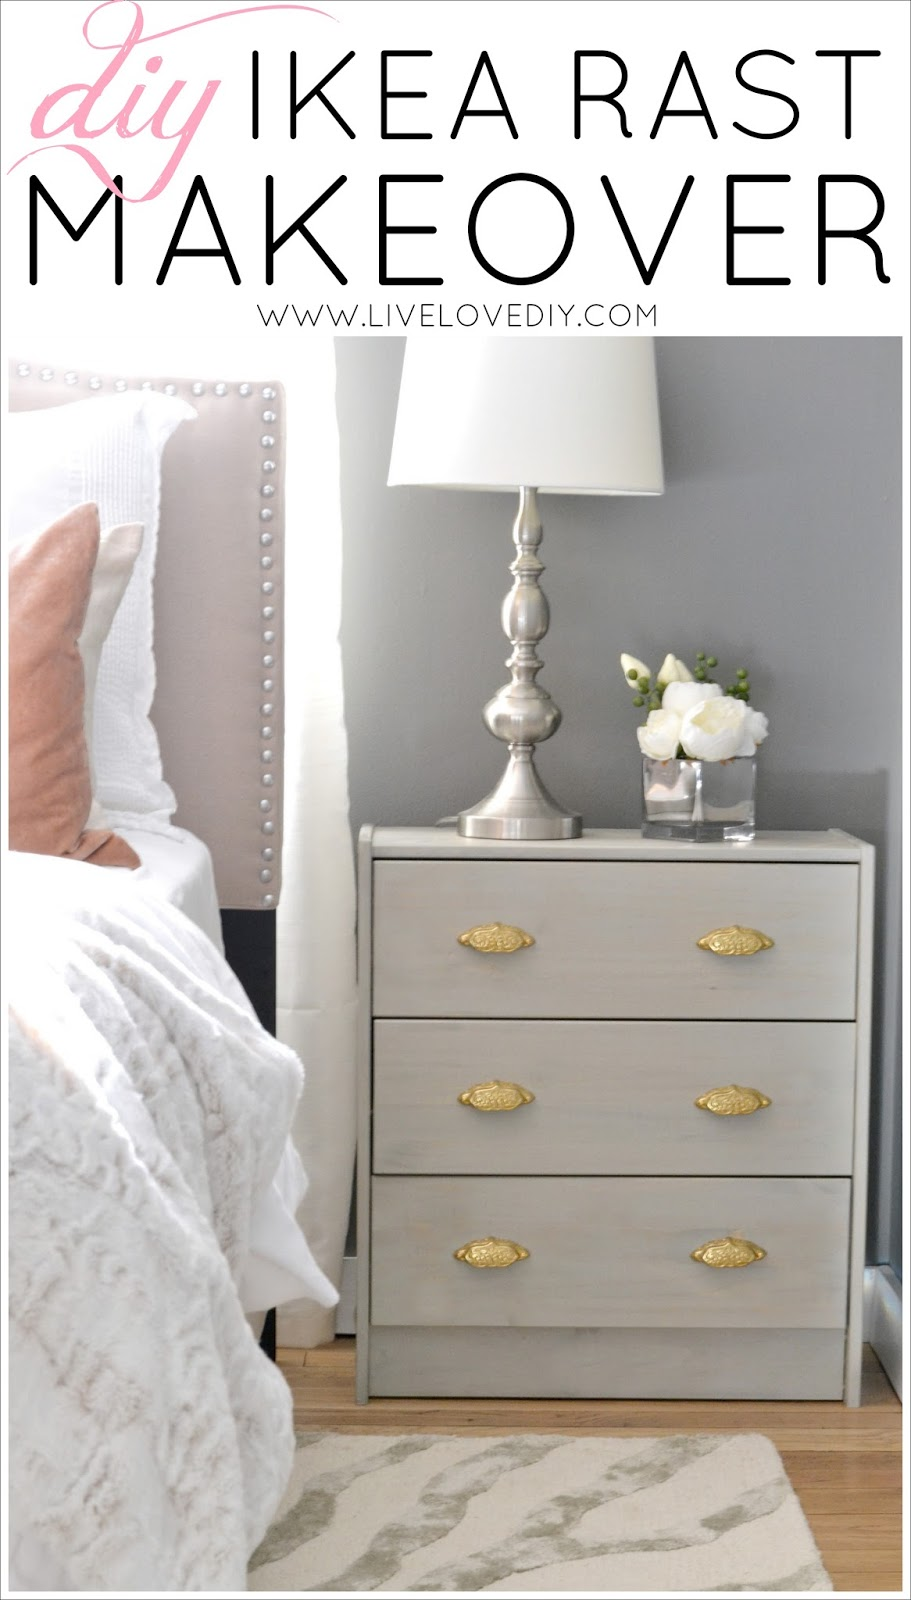 livelovediy diy ikea rast makeover with weathered gray wood stain. Black Bedroom Furniture Sets. Home Design Ideas